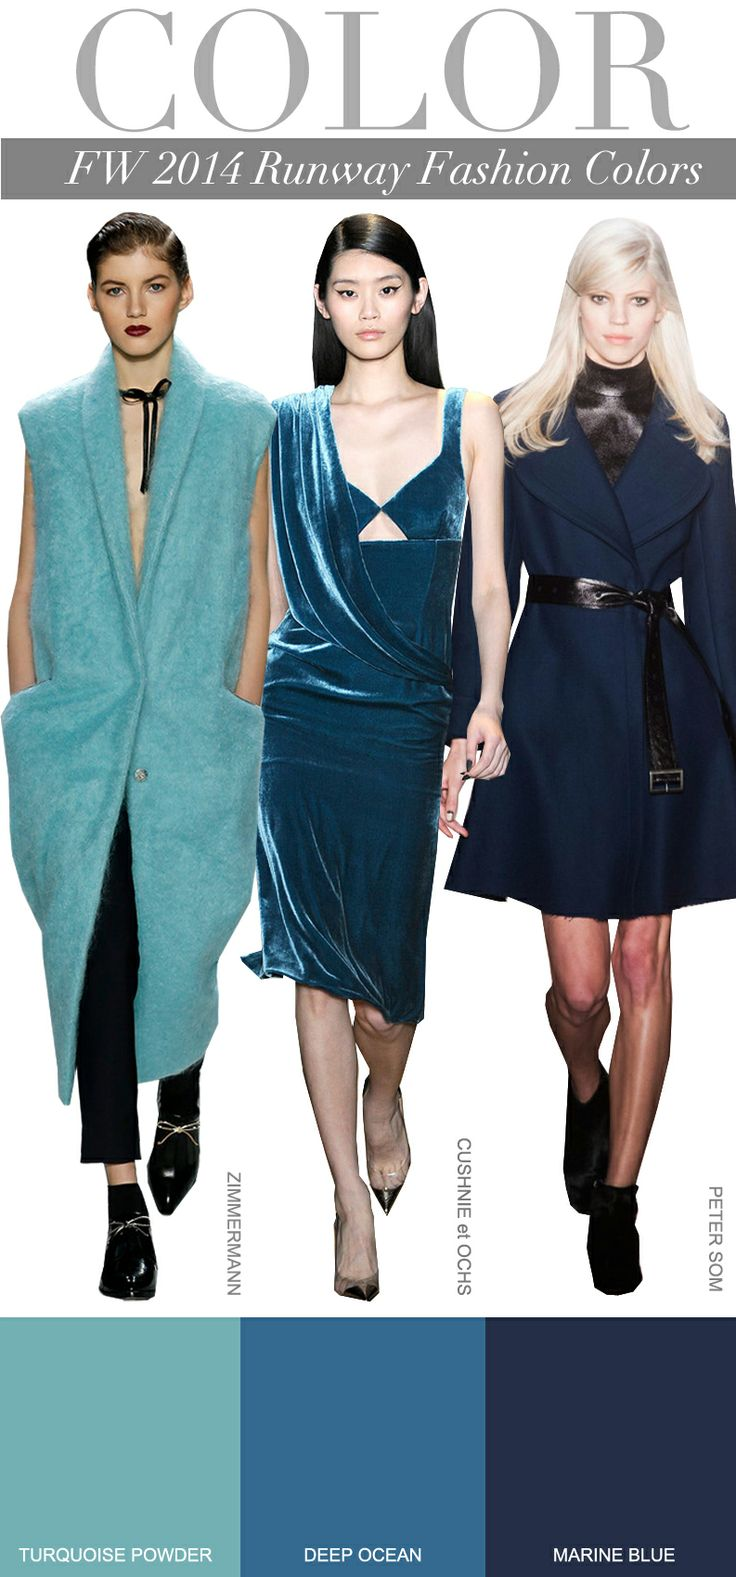 Future fashion trends 2014 - Trend Council Fw 2014 Runway Colors